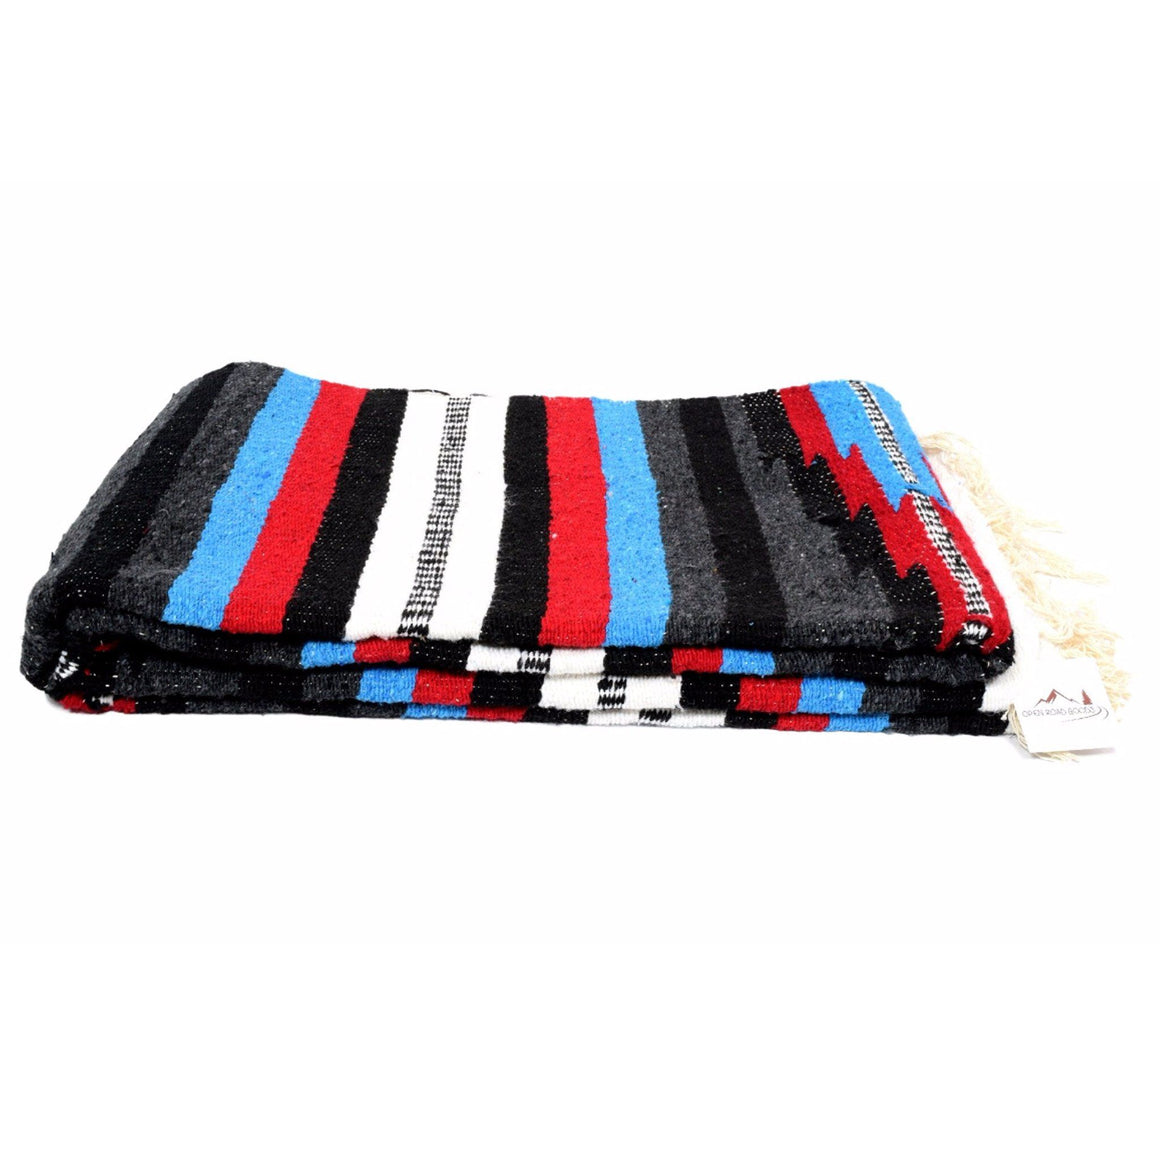 "Red, Bright Blue, Black, Gray, and White. Baja Mexican Thunderbird Yoga Blanket in our Custom Aztec Design.  Our Mexican Baja Blankets are thick and heavy weighted making them excellent for cozy throws for your bed or sofa. In your yoga practice they can be used as props and small bolsters and as a medium weight cover during savasana or meditation.   Bring them to the beach for mermaids to rest in the sun. We've heard they love them.  Features include:  Extra Large Size: 78"" x 54""  Cotton Acrylic Polyester"